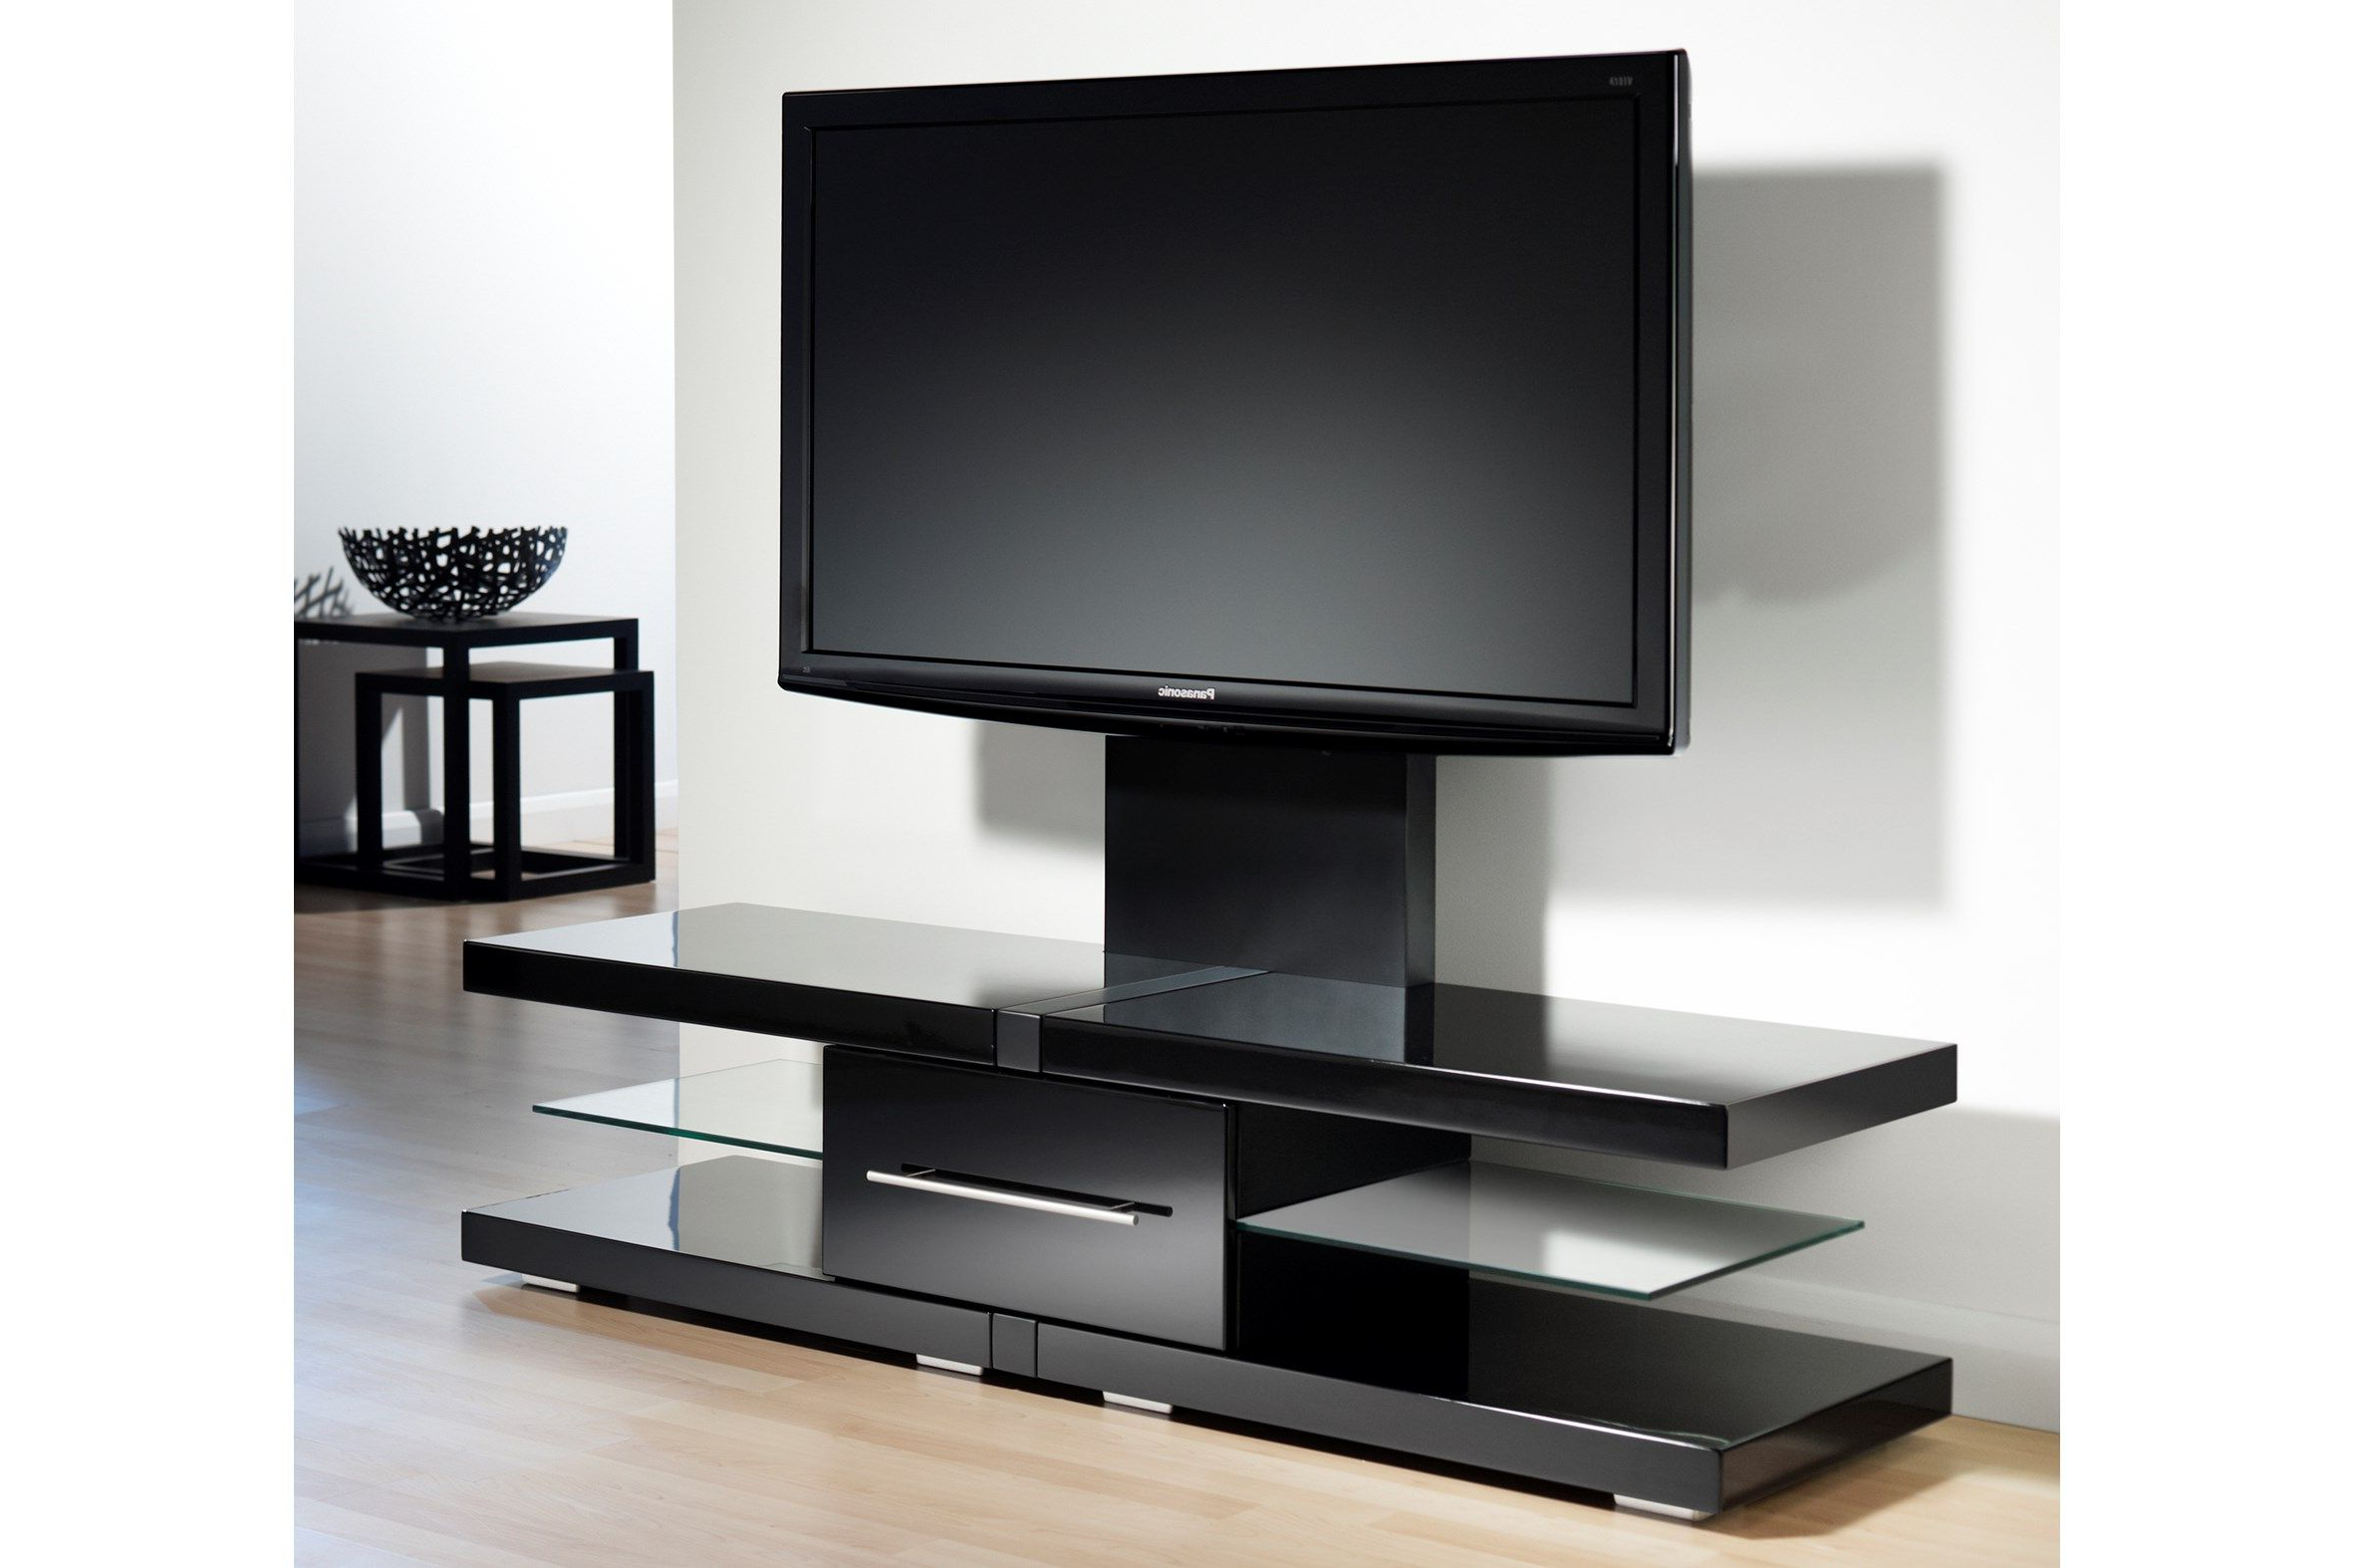 Living Room With Modern Design Tv Cabinets (View 5 of 20)